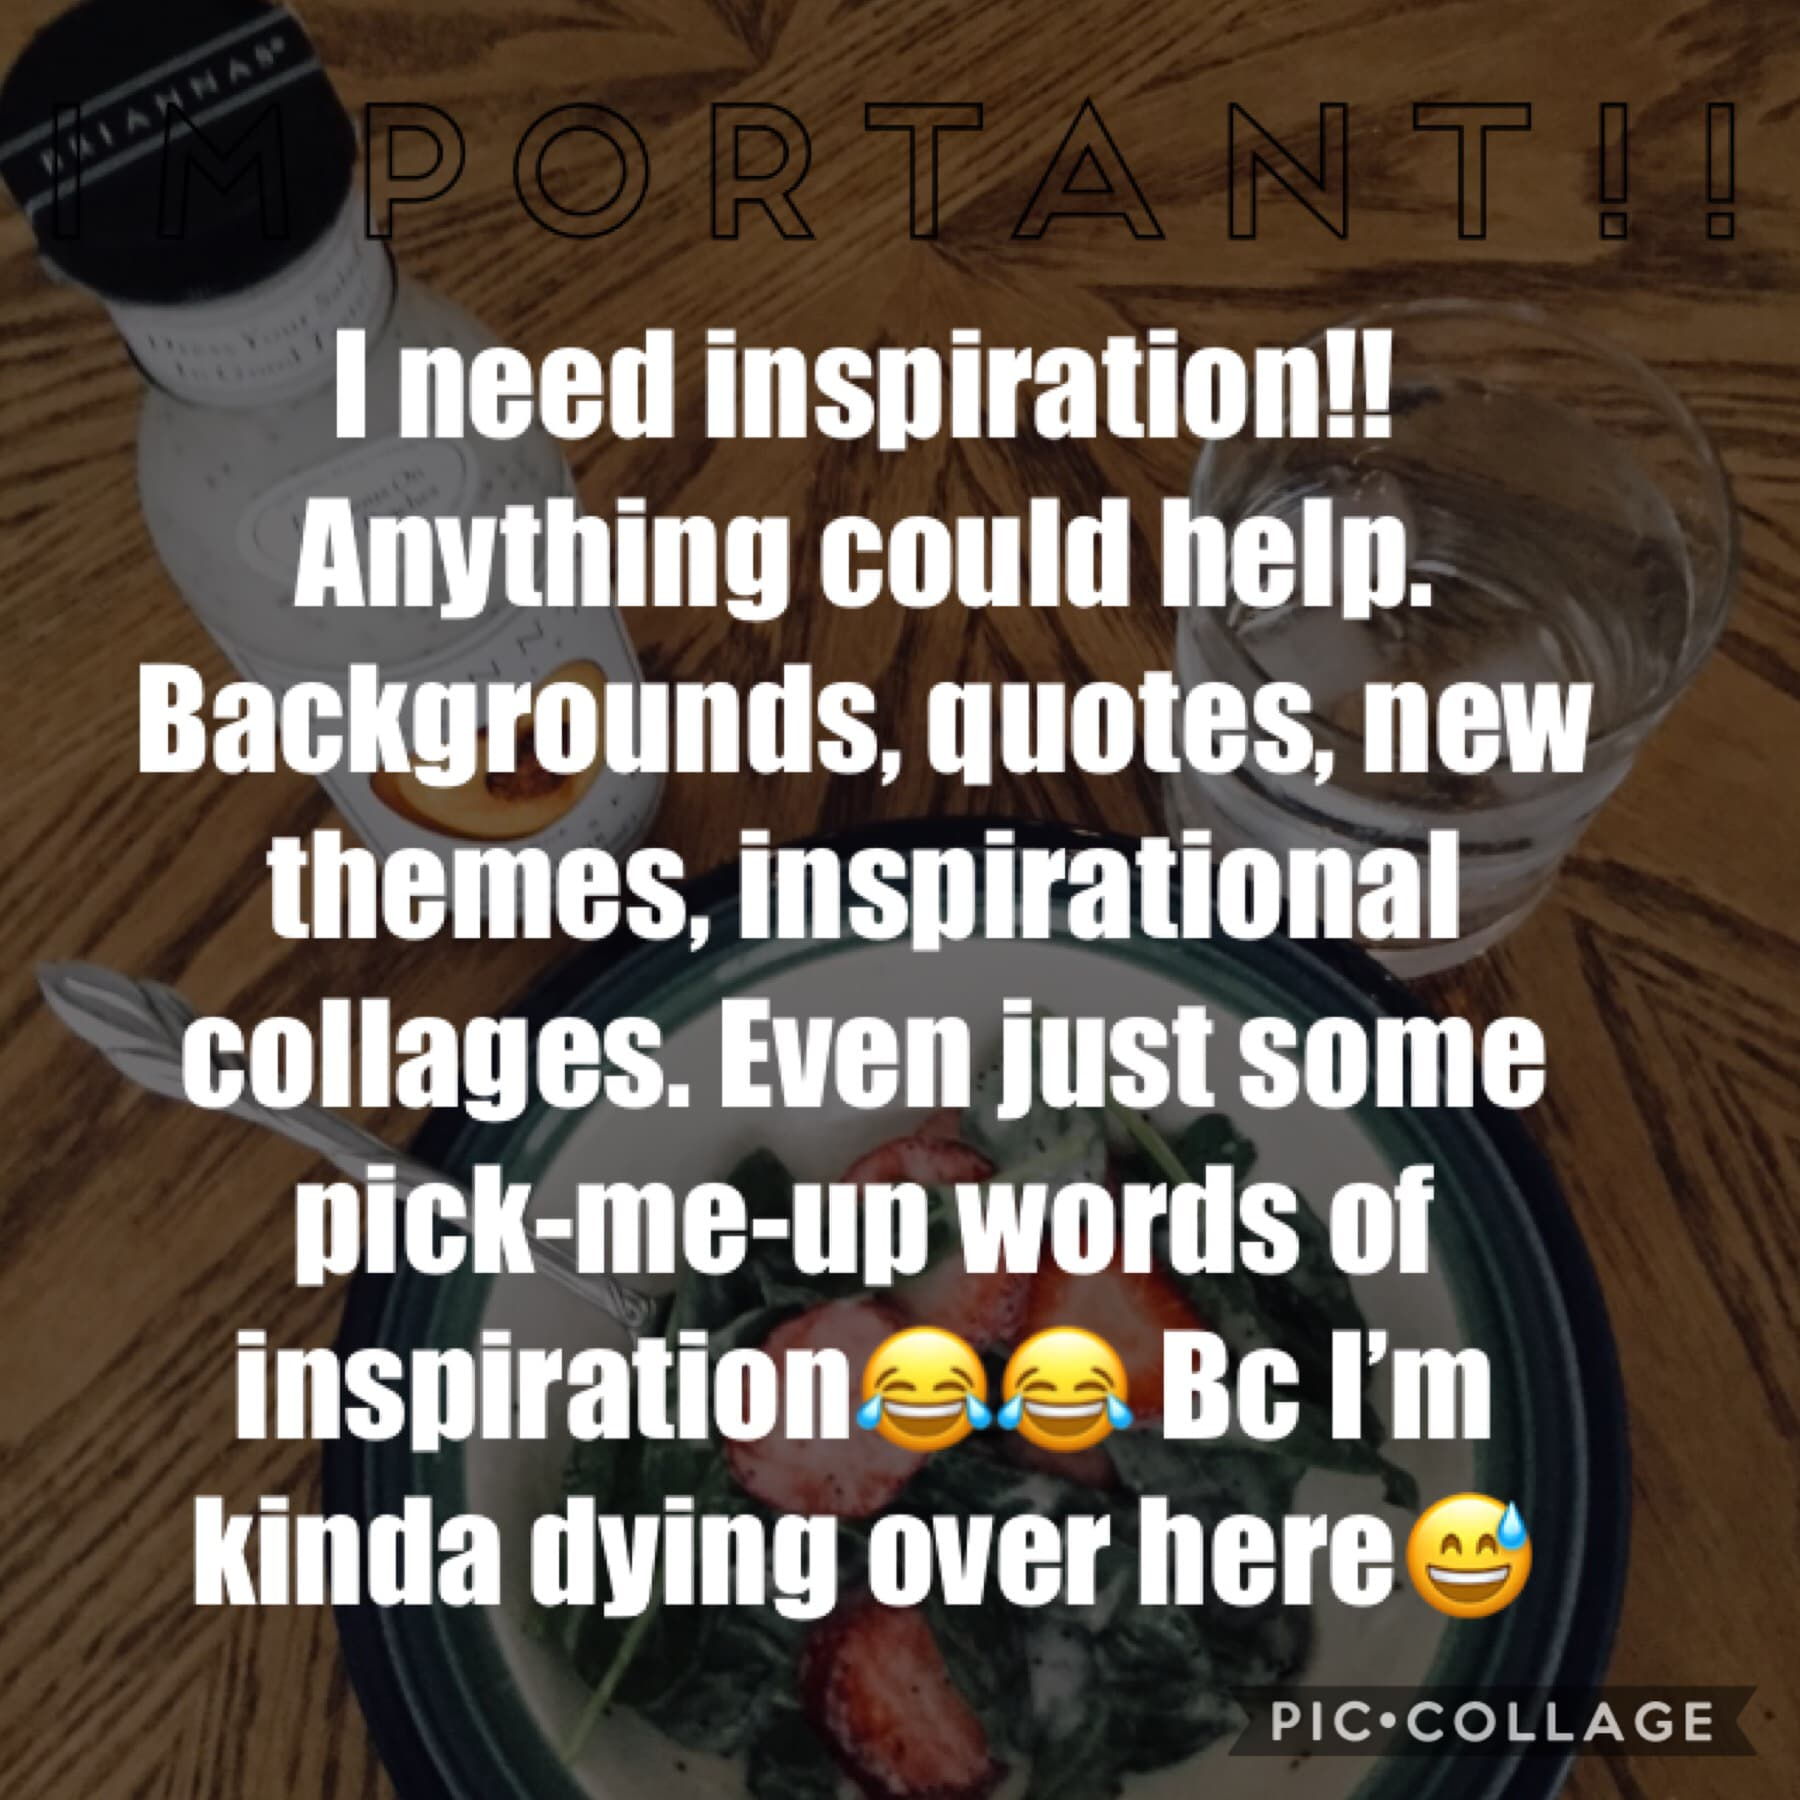 Tappity Tap Tap🙊 No joke, ANYTHING could help. I'm not motivated to make collages anymore. I need some serious inspiration. I start school Tuesday which means I'm gonna start my inactivity period. I think I've become too obsessed w/ PC. It's becoming unhe